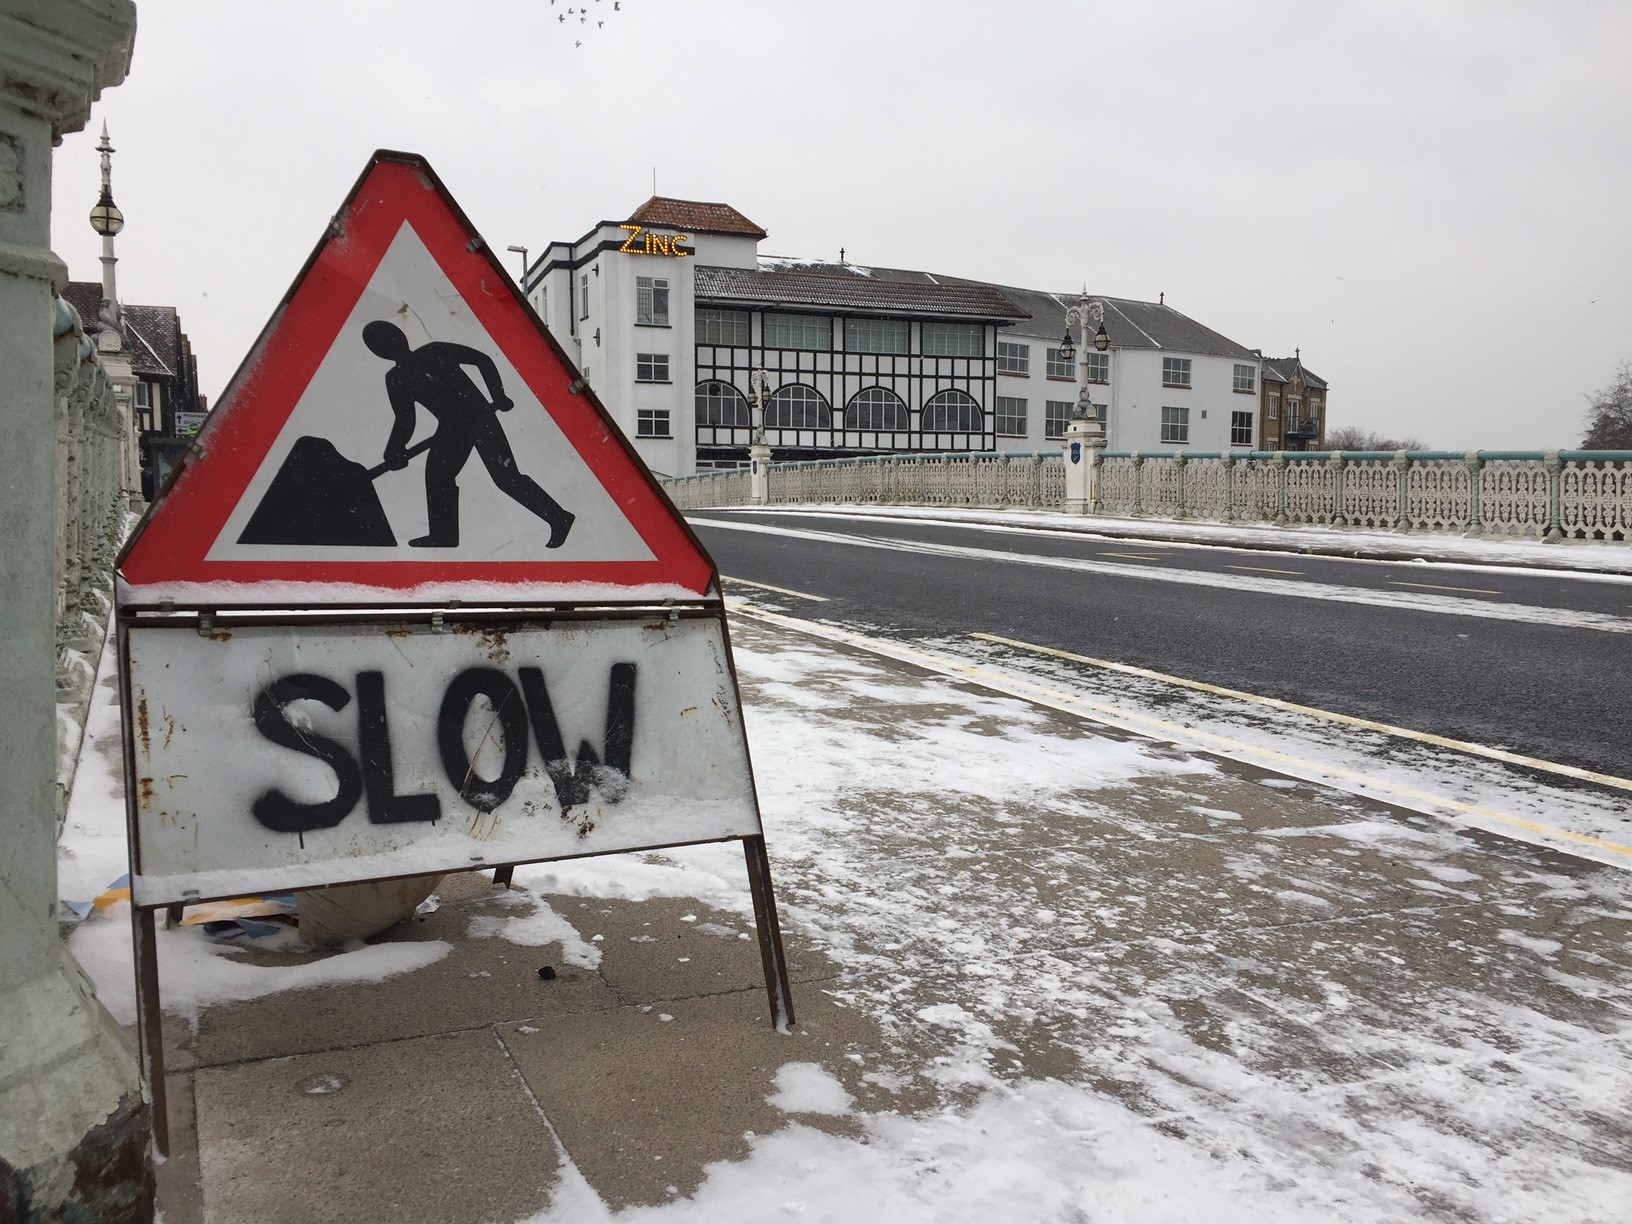 OVERSPEND: Andrew Turner, the county's strategic manager from highways, said heavy snowfall across Somerset in late February and early March had led to higher staff costs and the need to buy in more salt